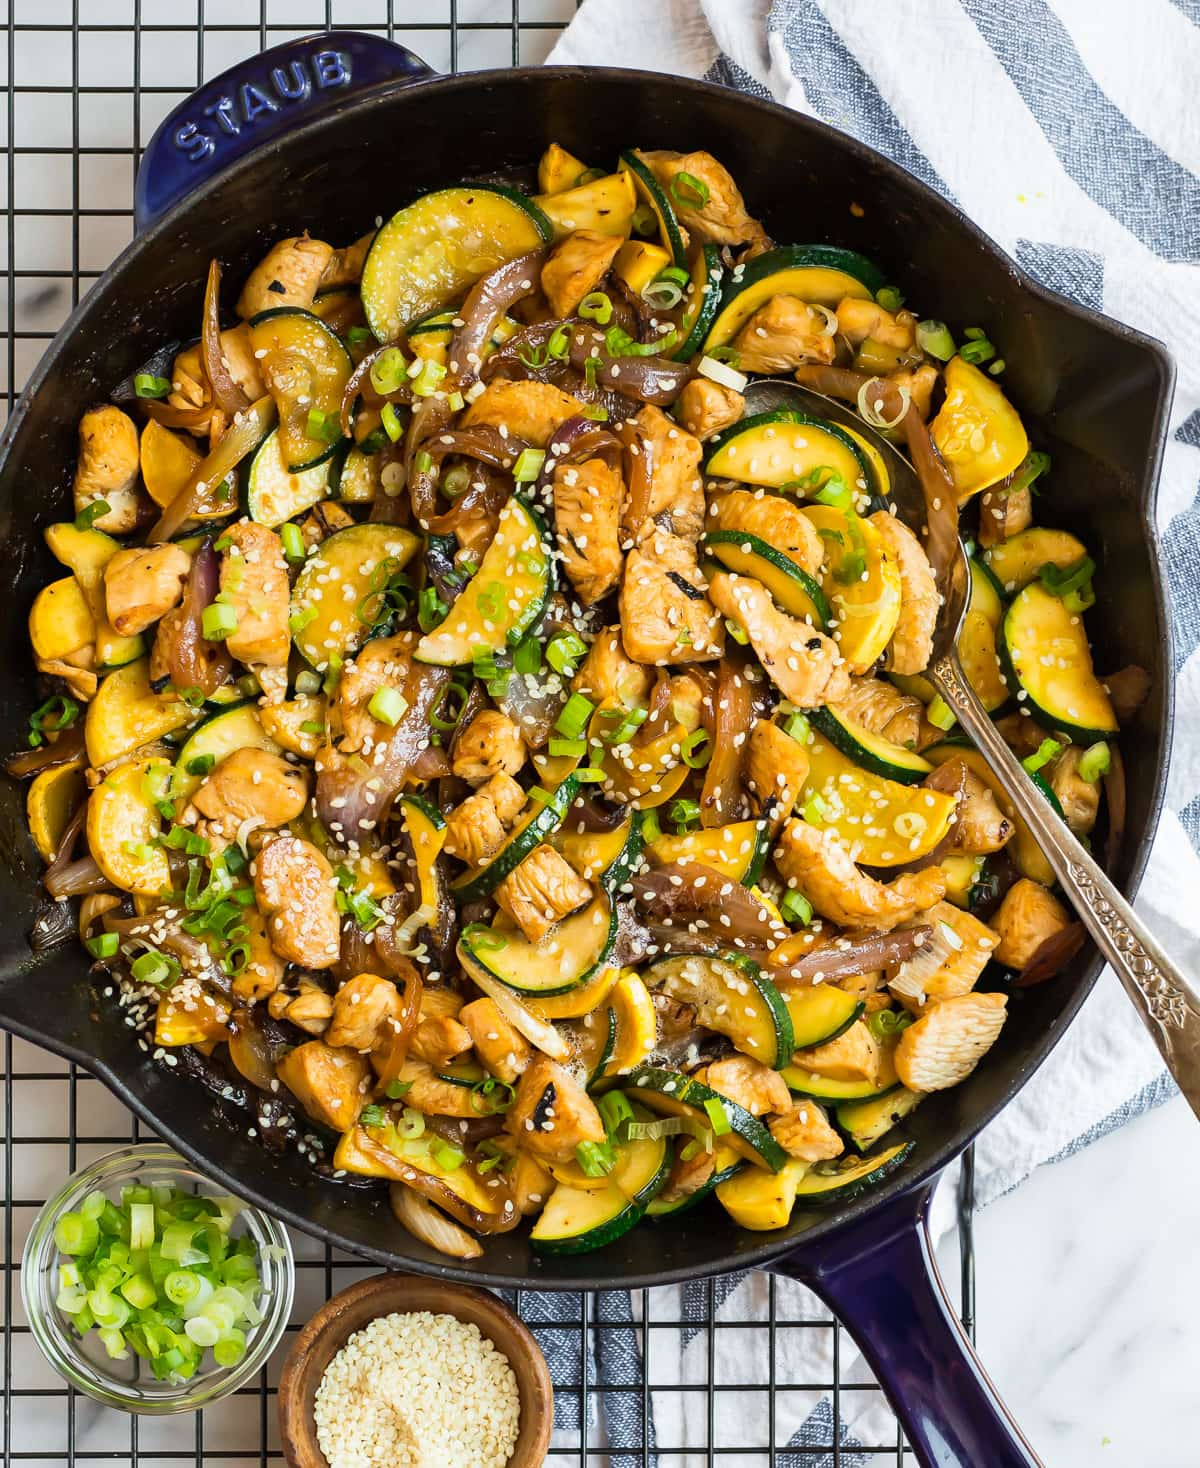 Easy chicken and zucchini stir fry in a skillet